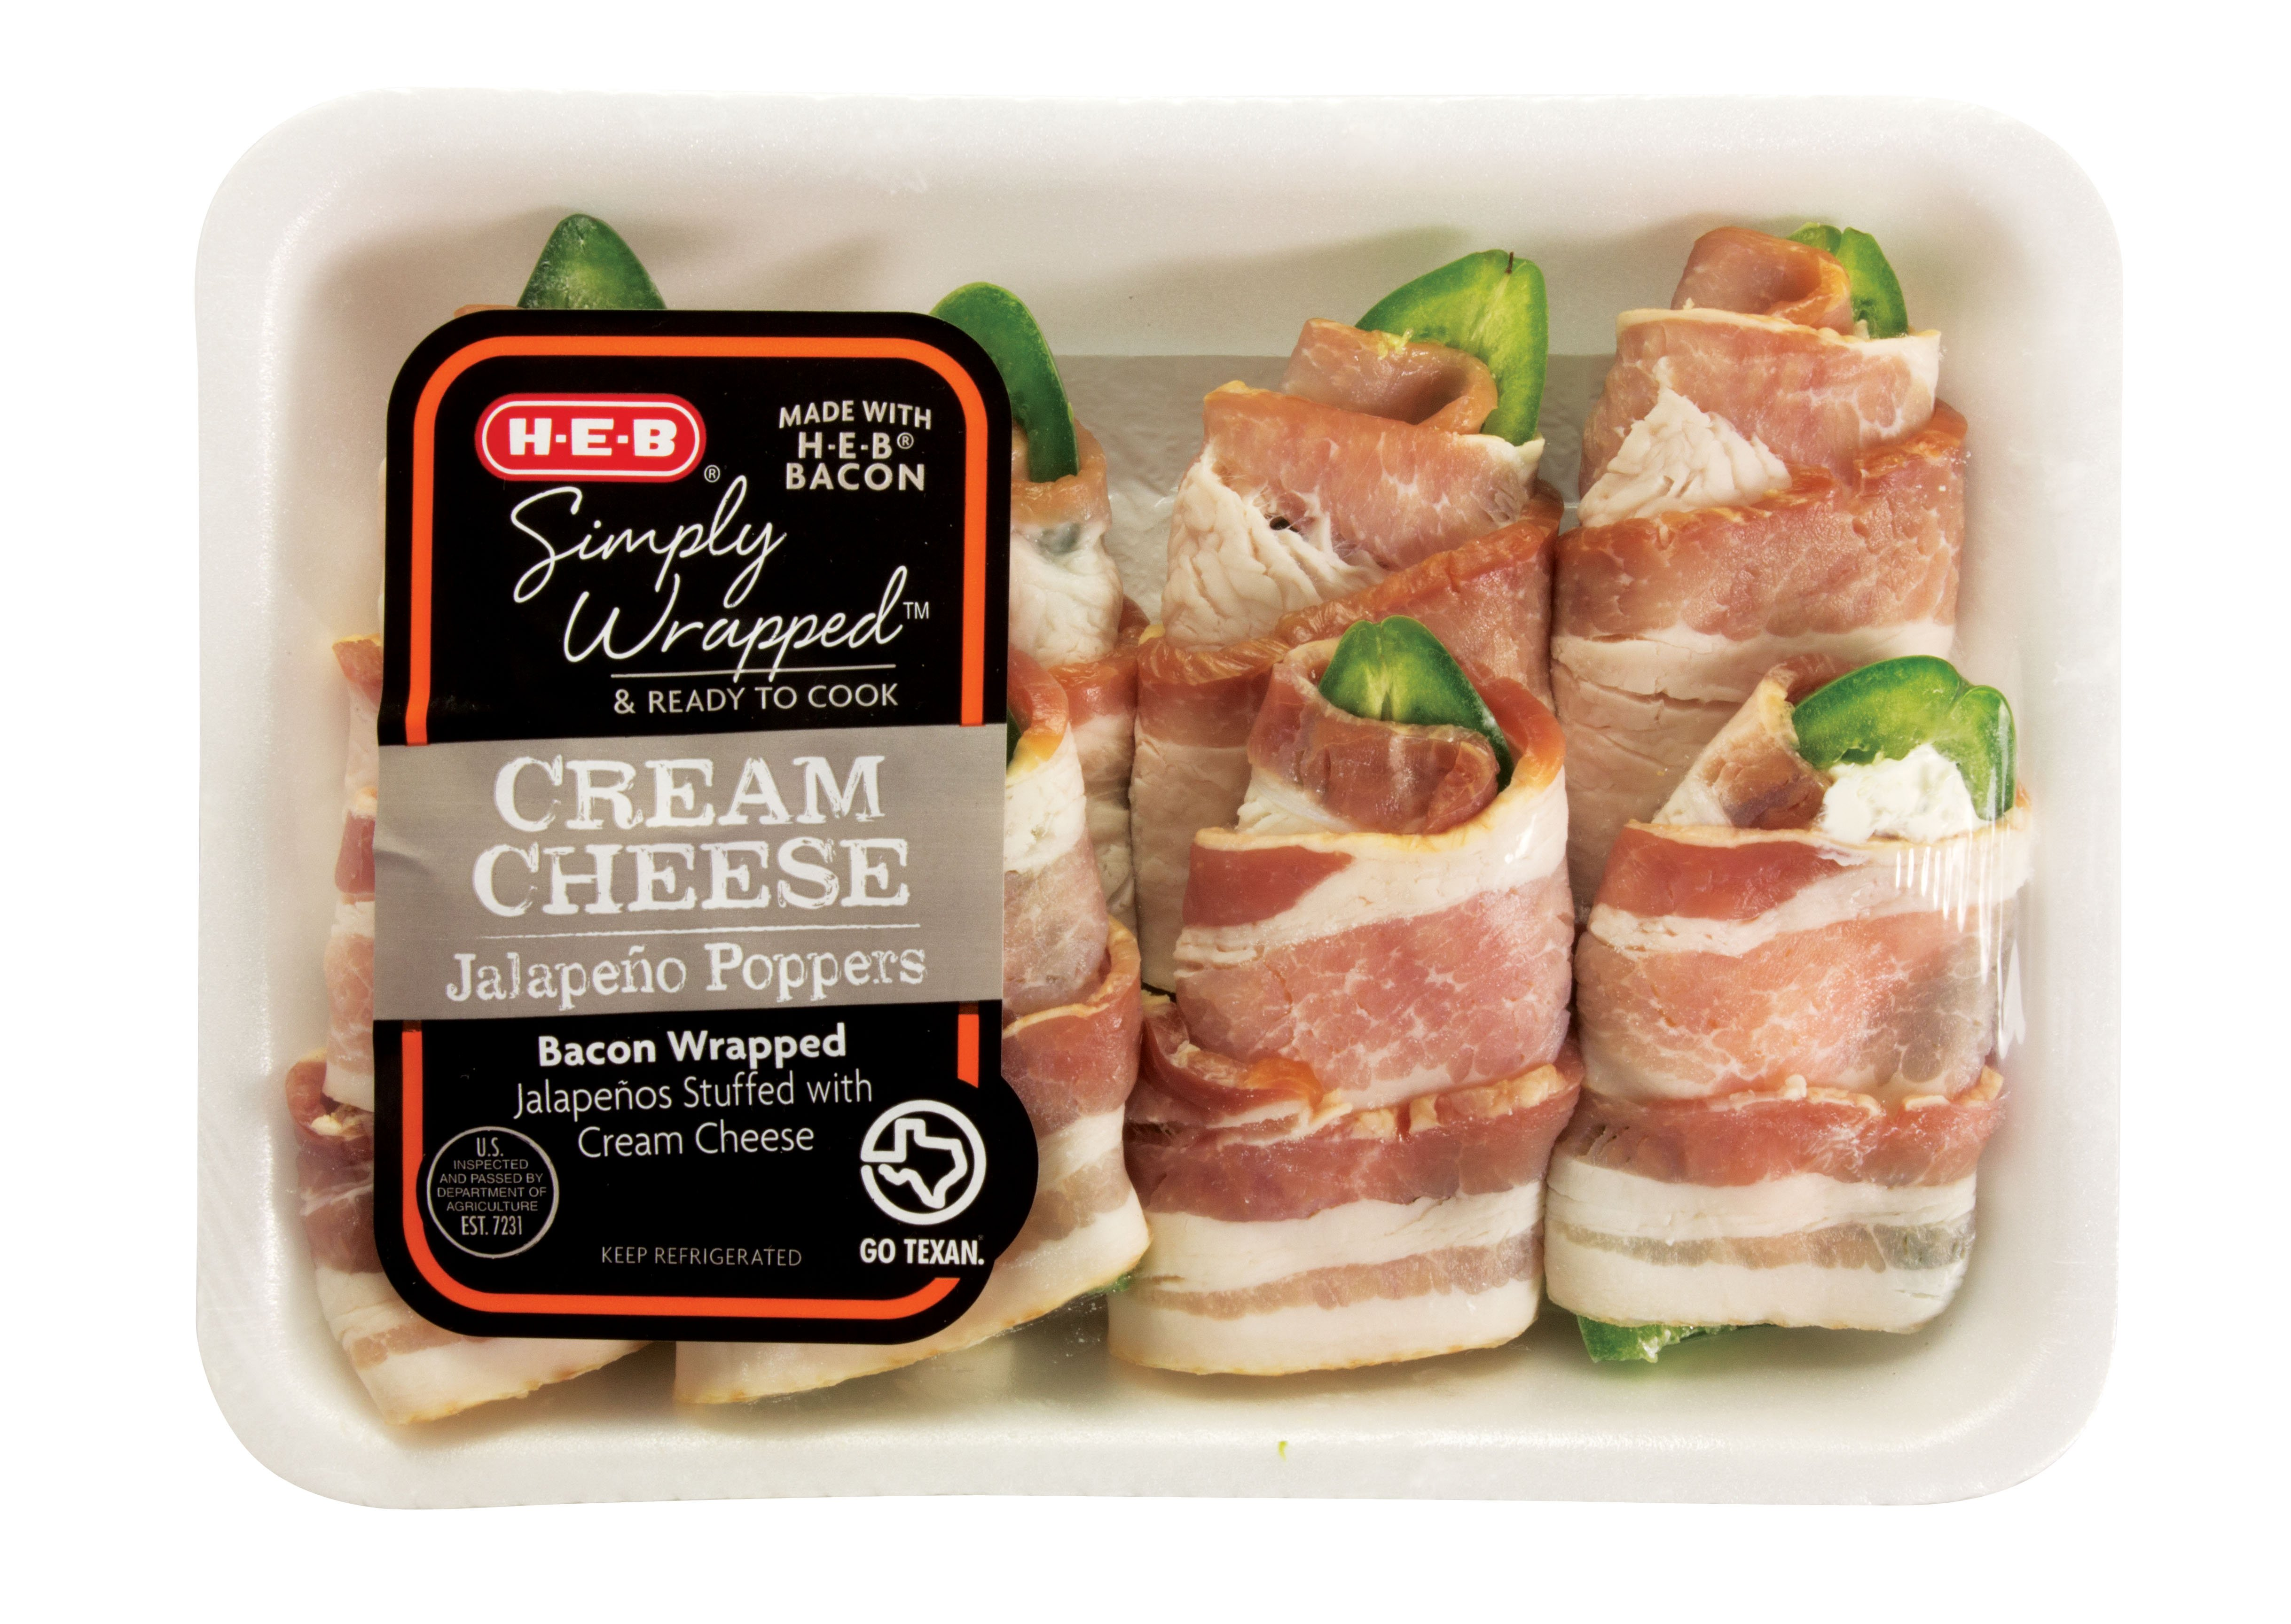 H‑e‑b Simply Wrapped Cream Cheese Poppers €� Shop Fajitas And Prepared Meats  At Heb